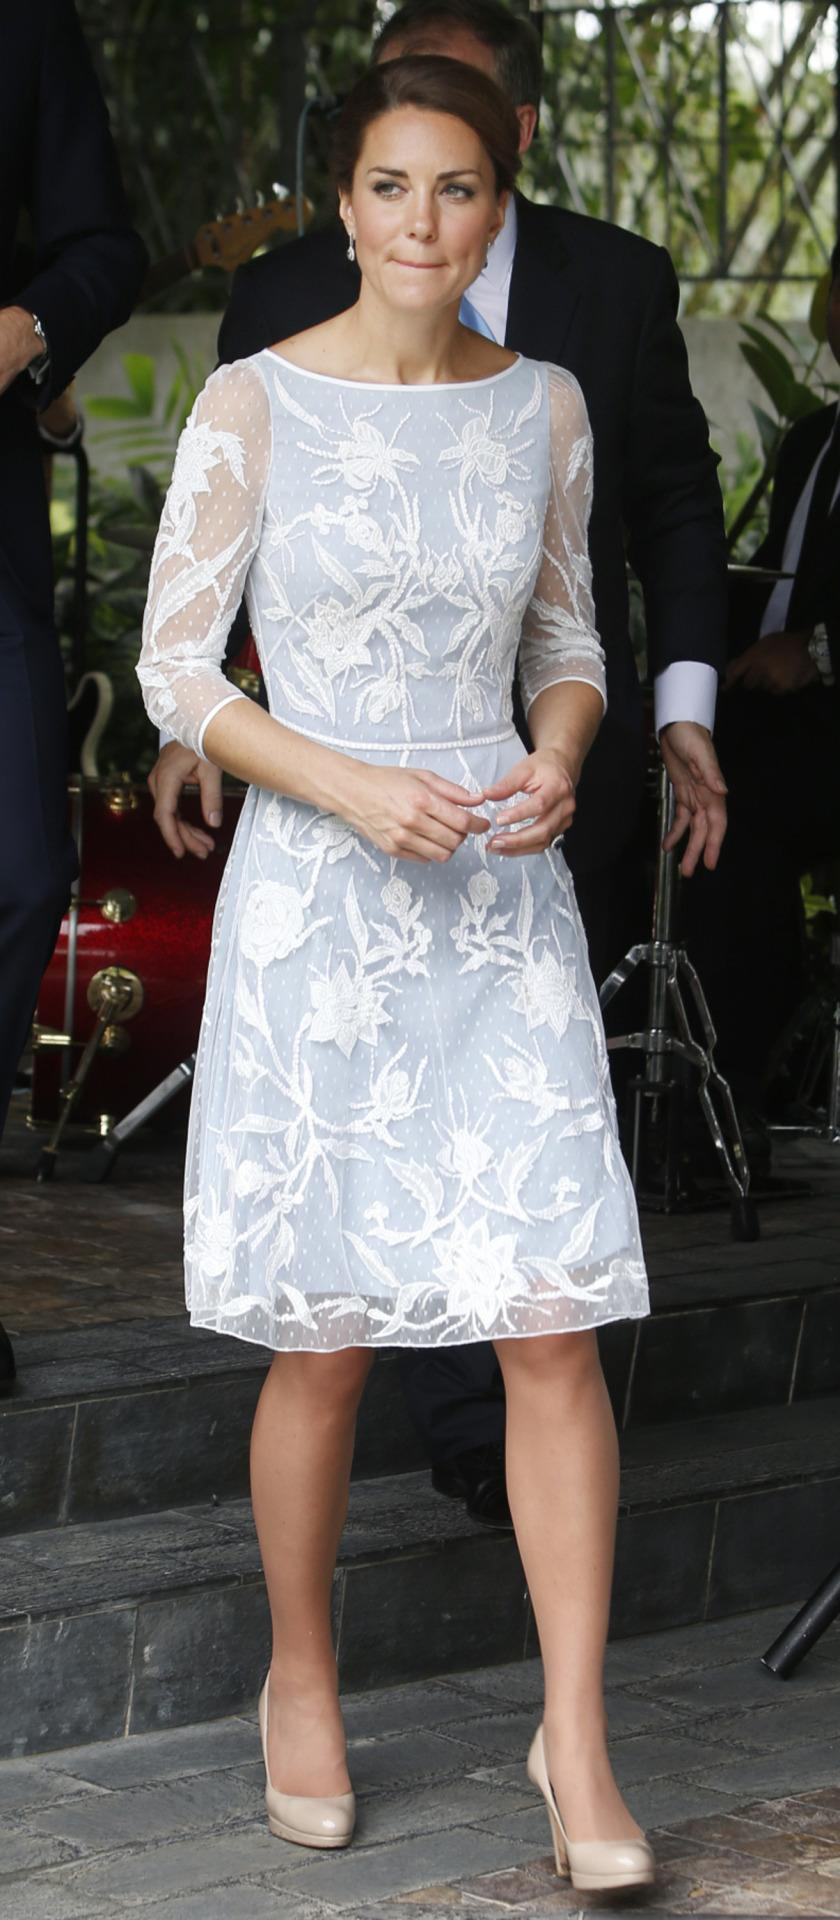 <p>Kate attended a tea party in Kuala Lumpur in an ice blue Temperley dress. Featuring elegant white embroidery, she wore nude L.K. Bennett heels. </p><p><i>[Photo: PA]</i></p>